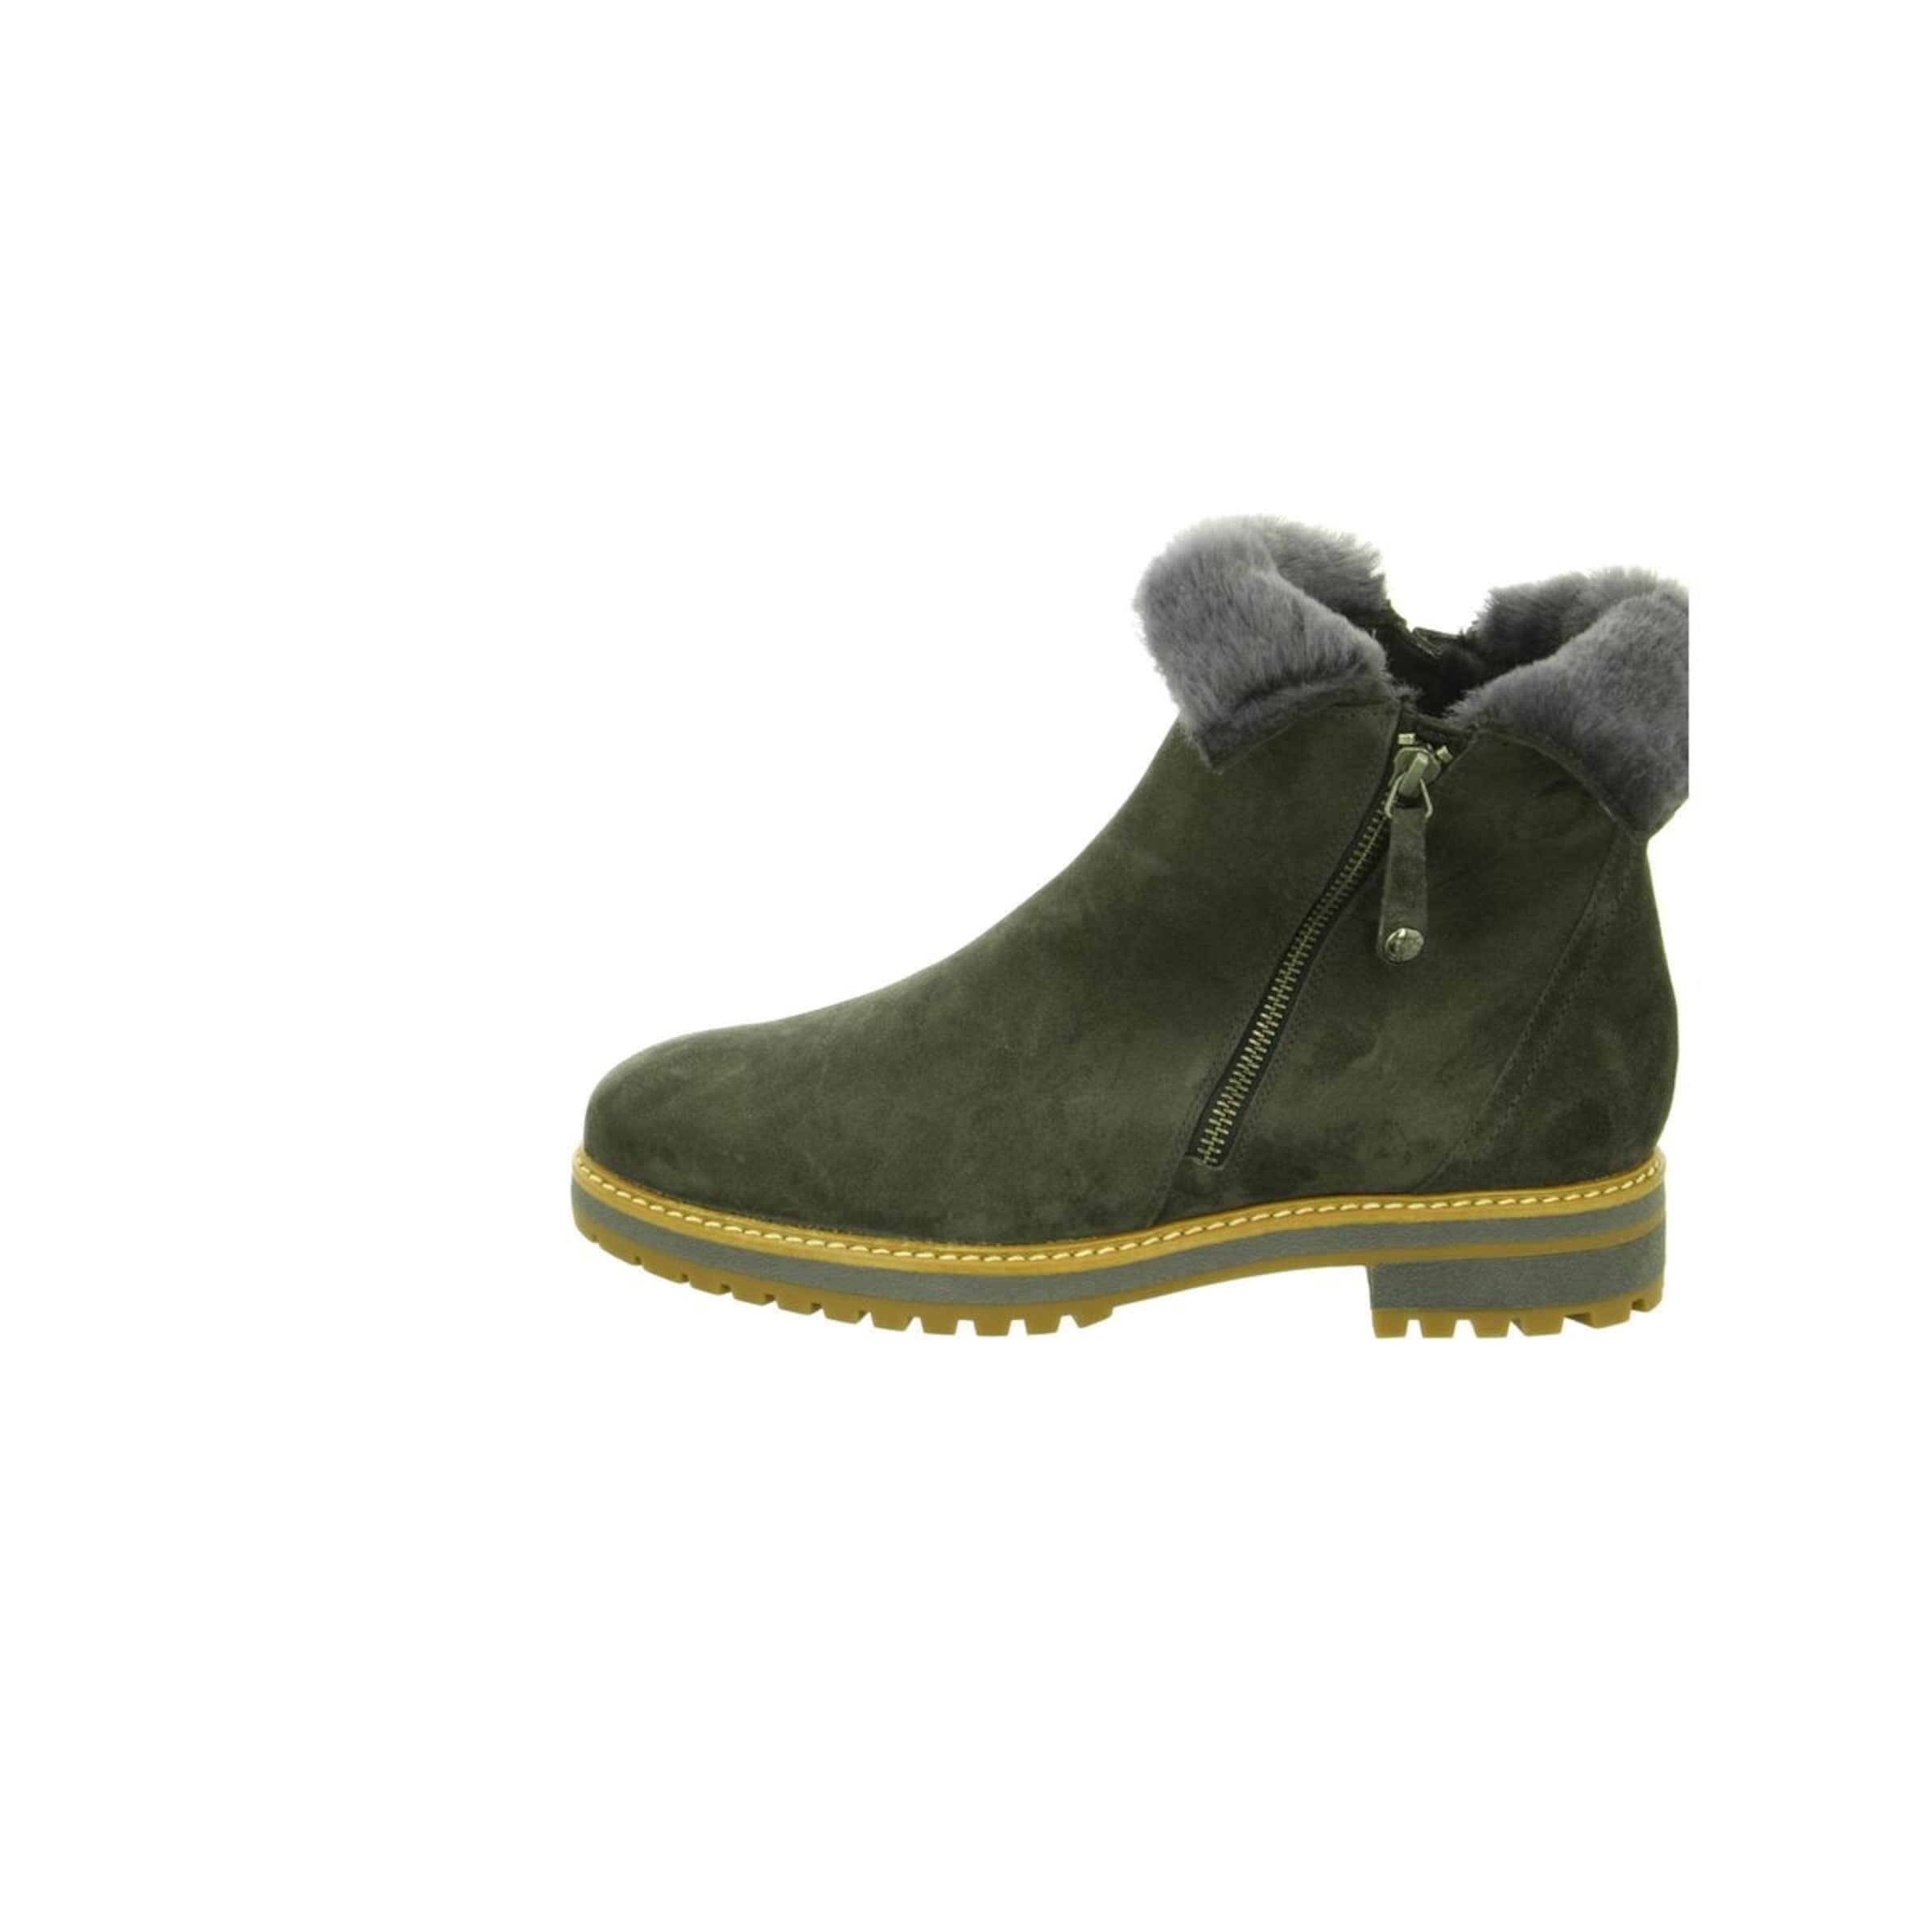 In Paul Green Stiefel Oliv LimoneGrau Tc5uFJ3lK1